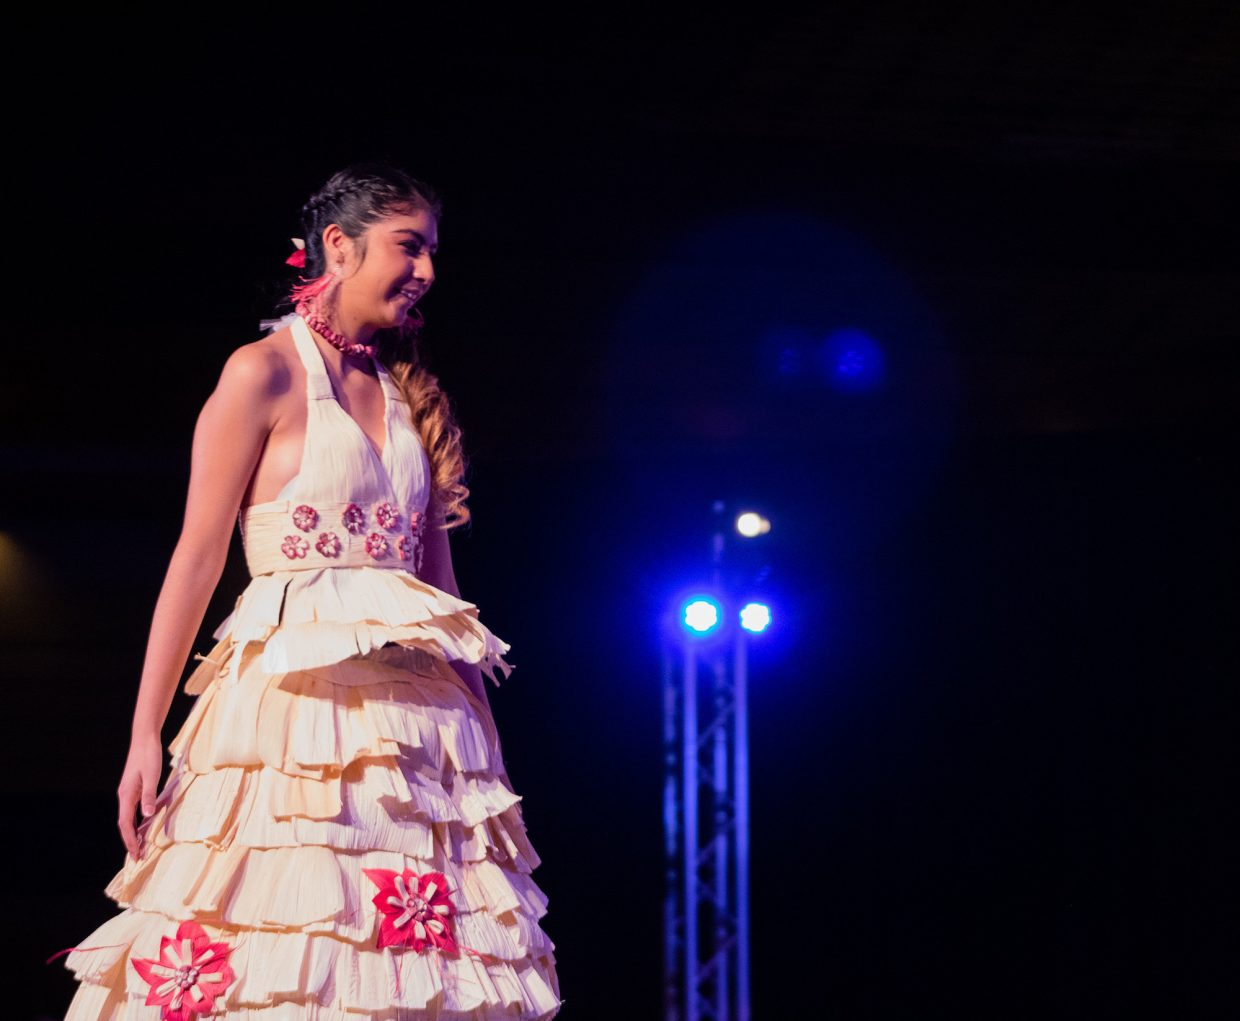 The dress that won the young adult division was designed and modeled by Adriana Avila to reflect her Mexican heritage.